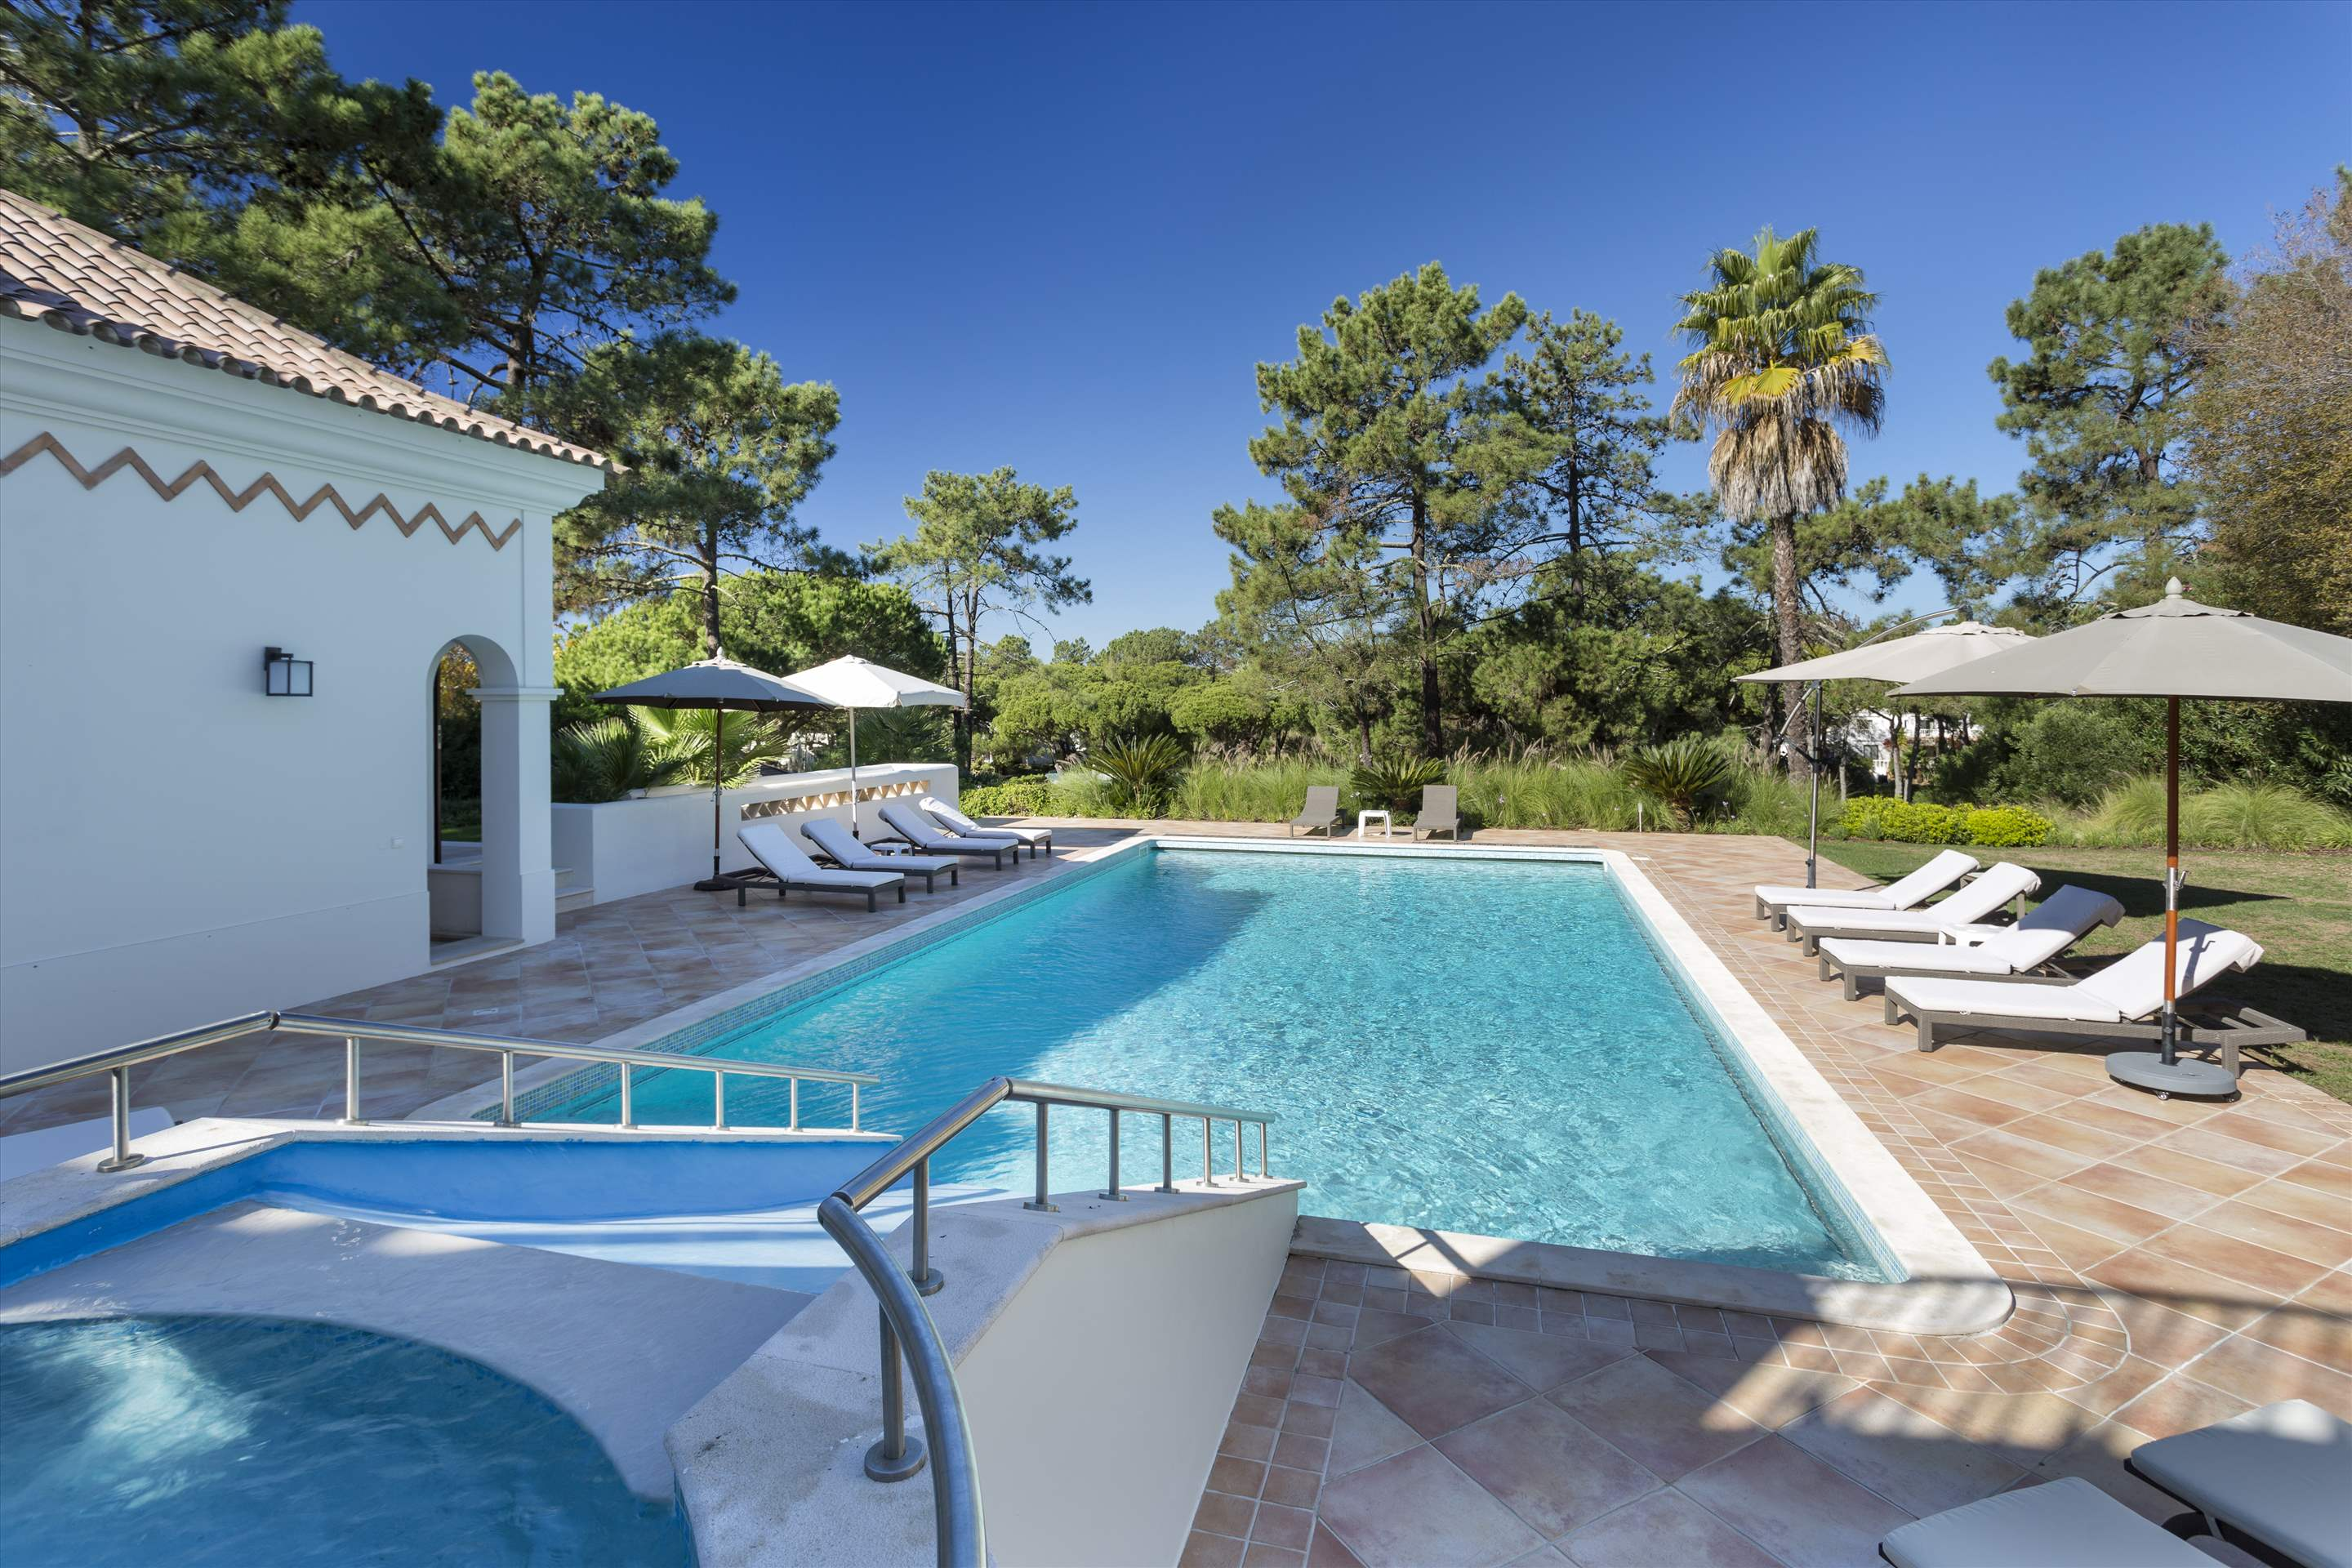 Villa Lantana 2, Main house & Annexe, 6 bedrooms, 6 bedroom villa in Quinta do Lago, Algarve Photo #14